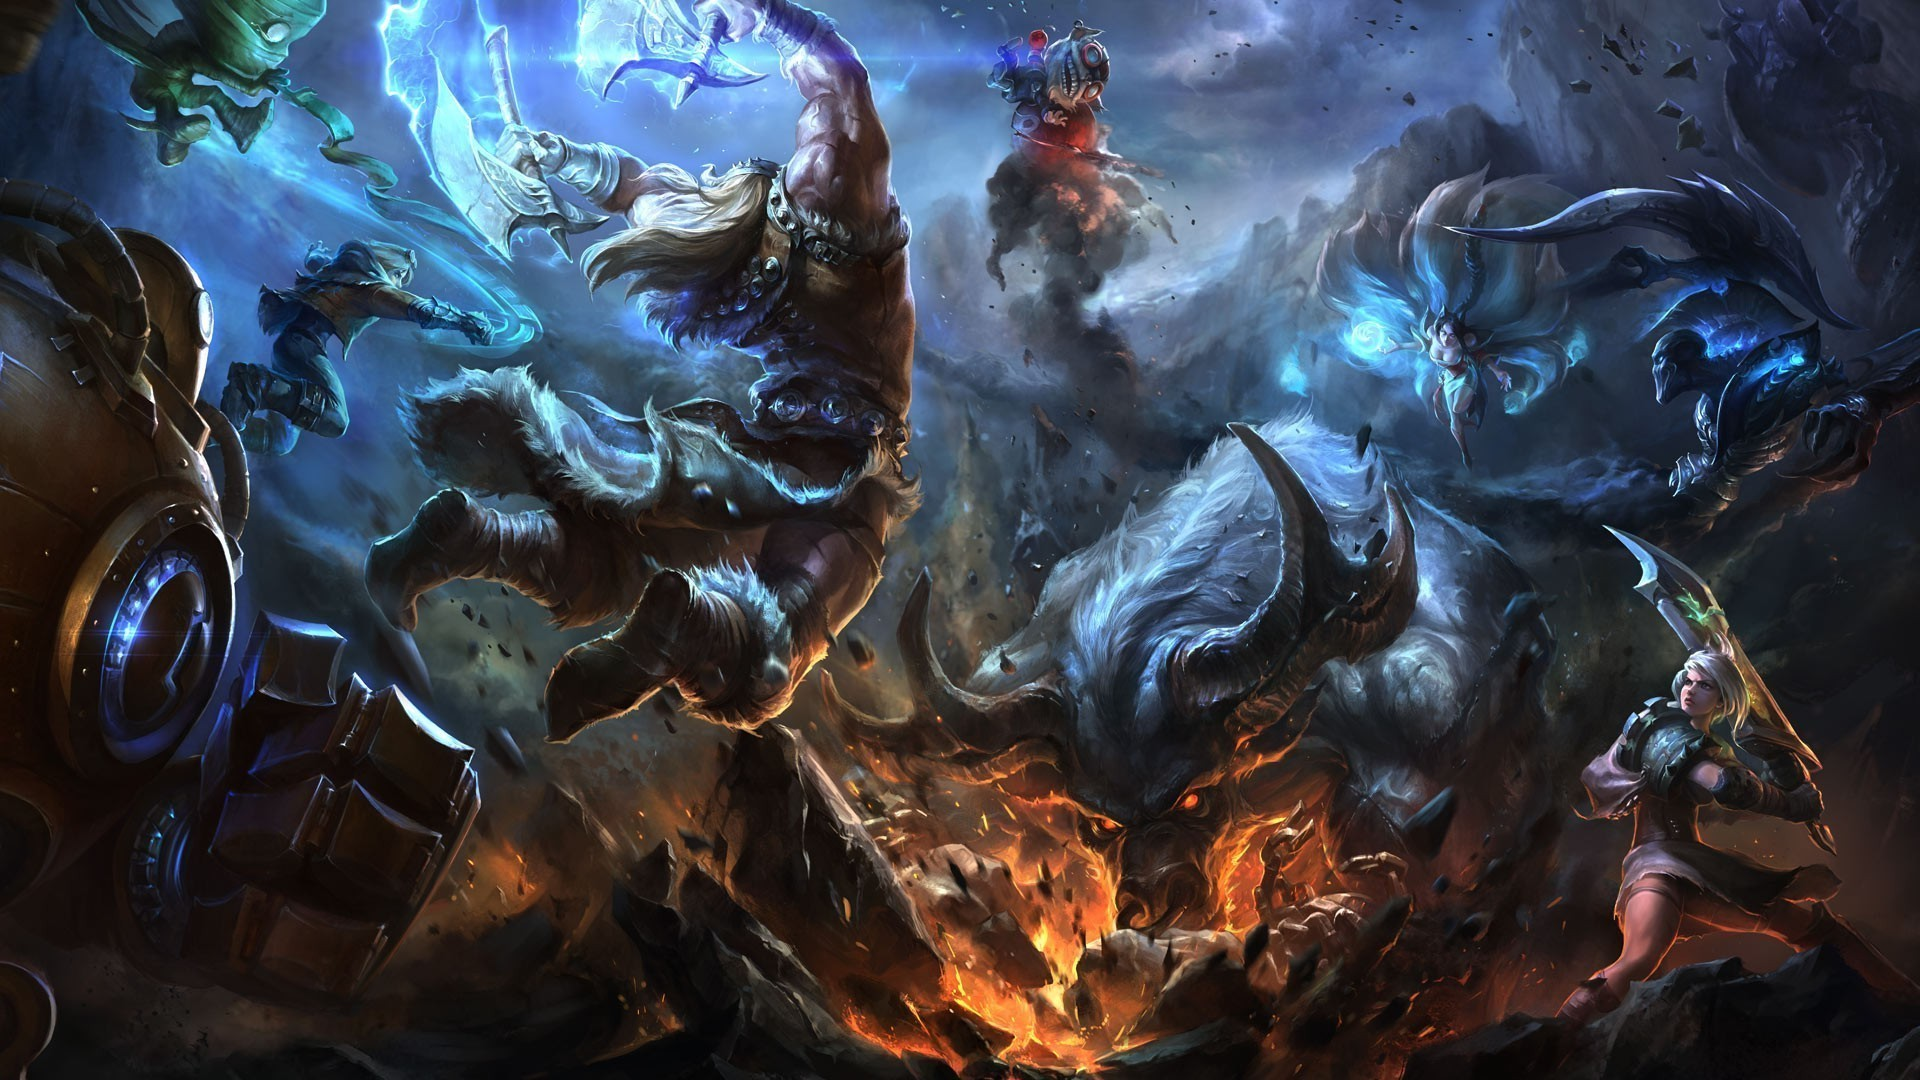 1920x1080  Cassiopeia League Of Legends HD Wallpapers Backgrounds | HD  Wallpapers | Pinterest | Hd wallpaper